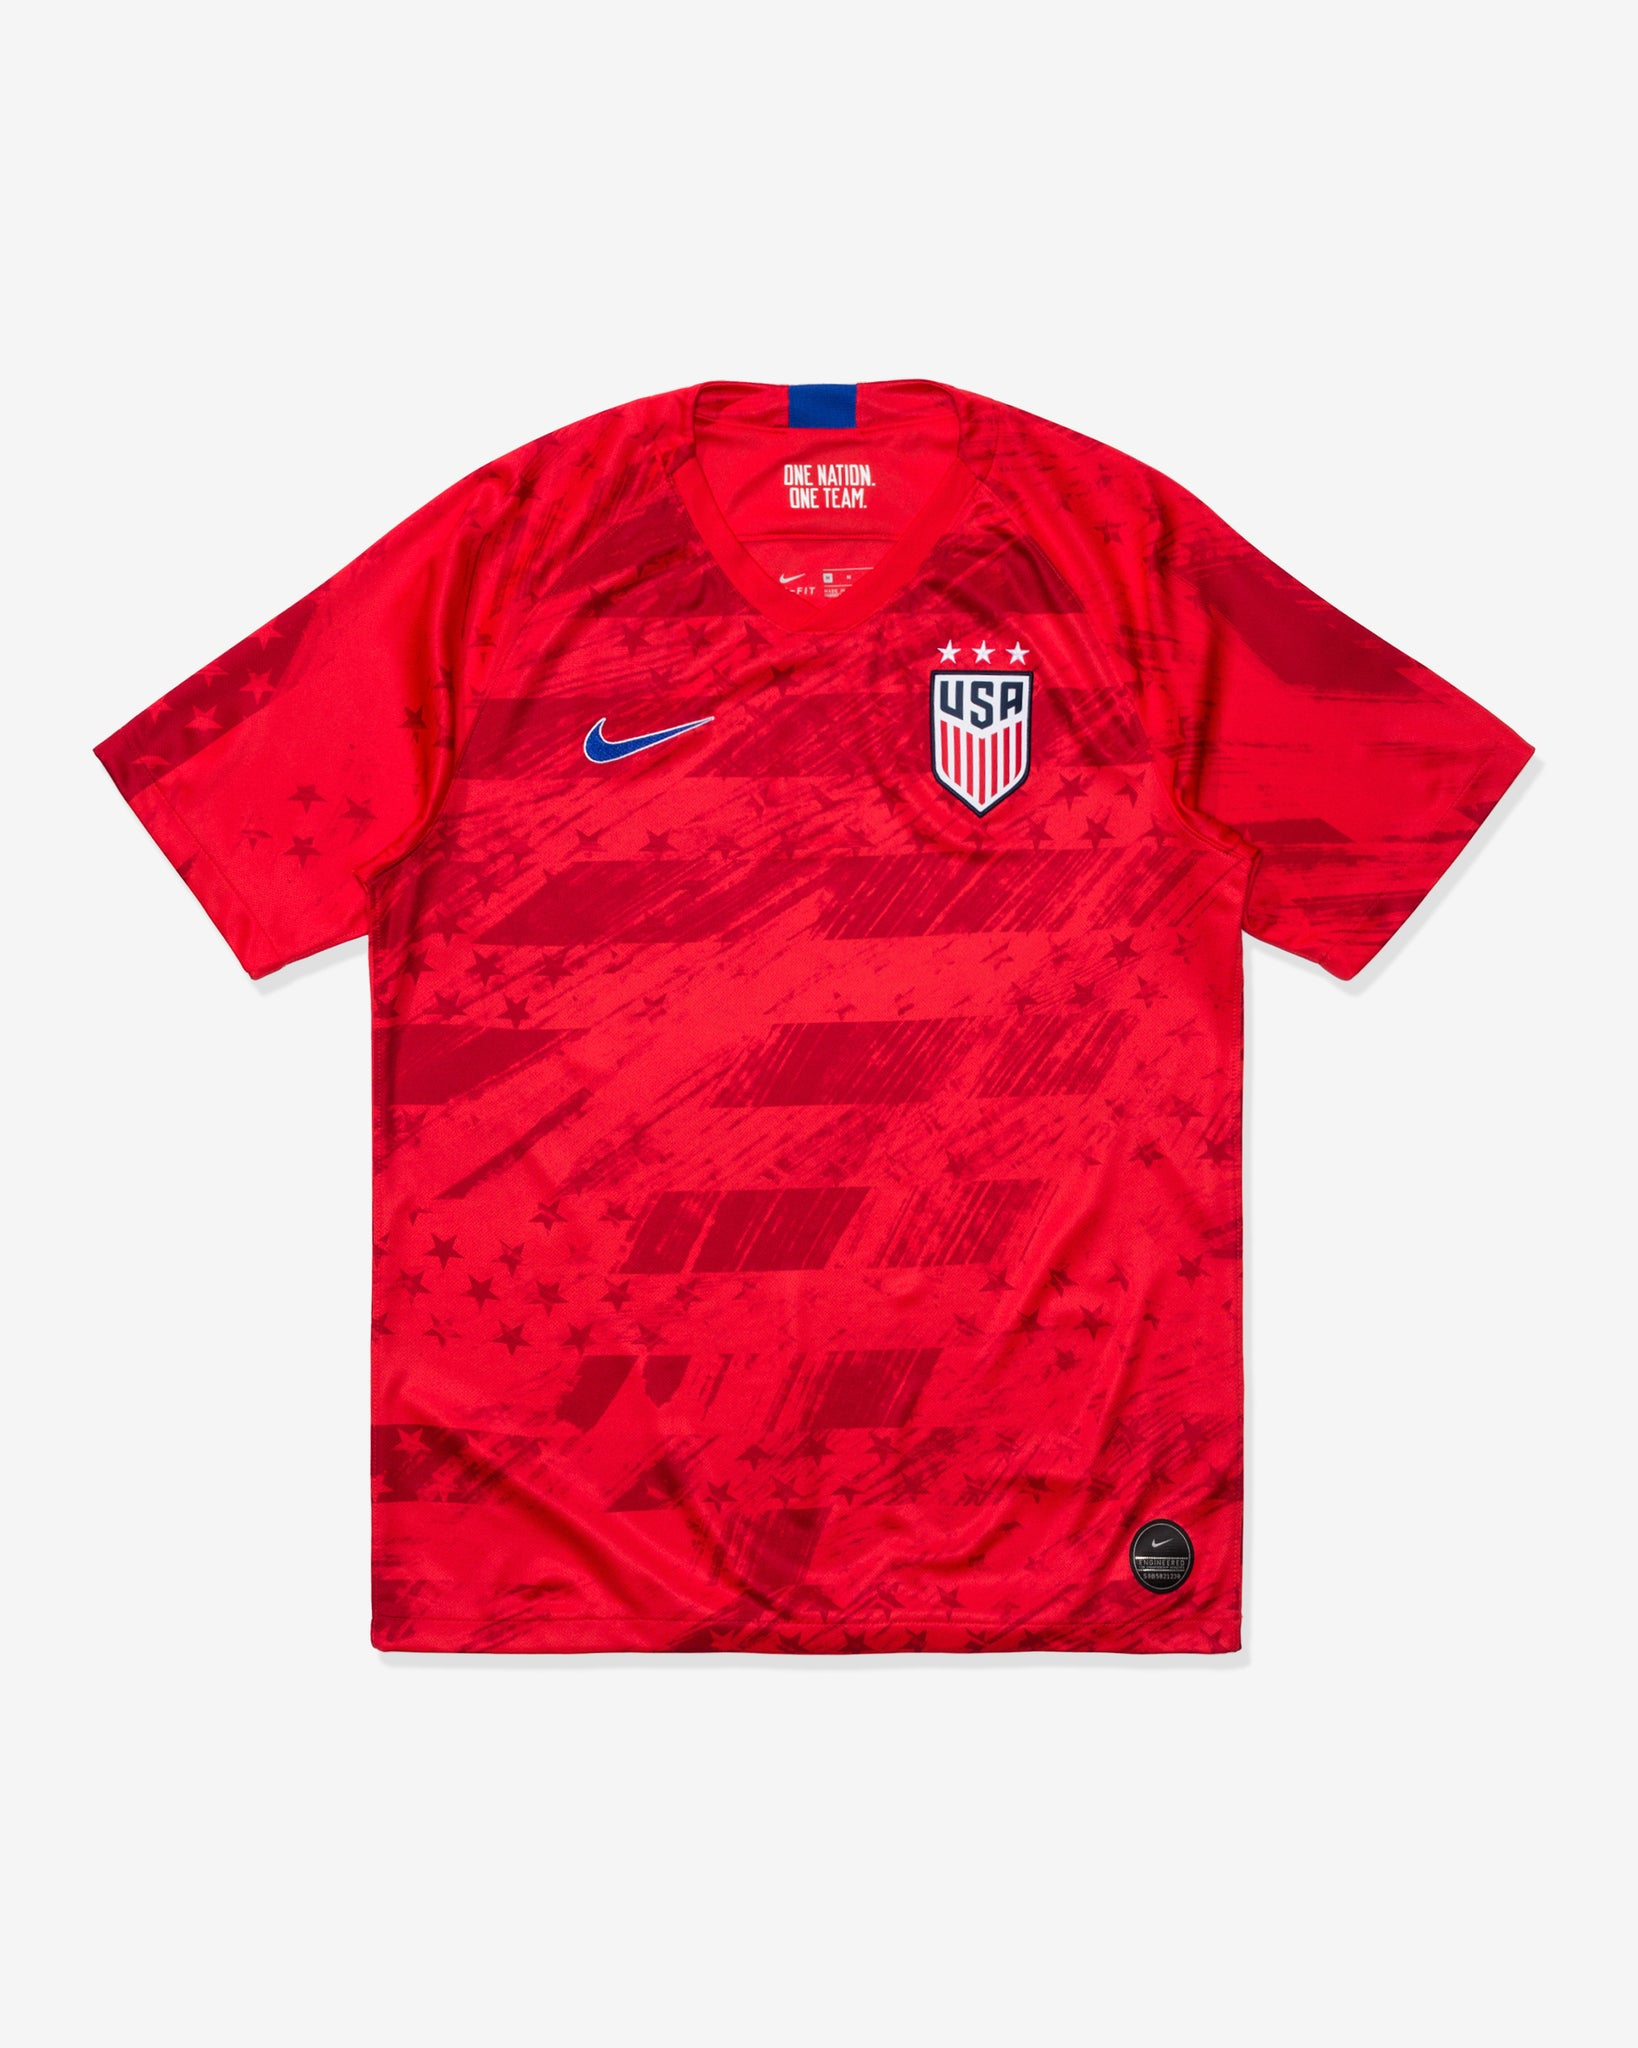 MEN'S U.S. STADIUM JERSEY 2019 - SPEEDRED/BRIGHTBLUE